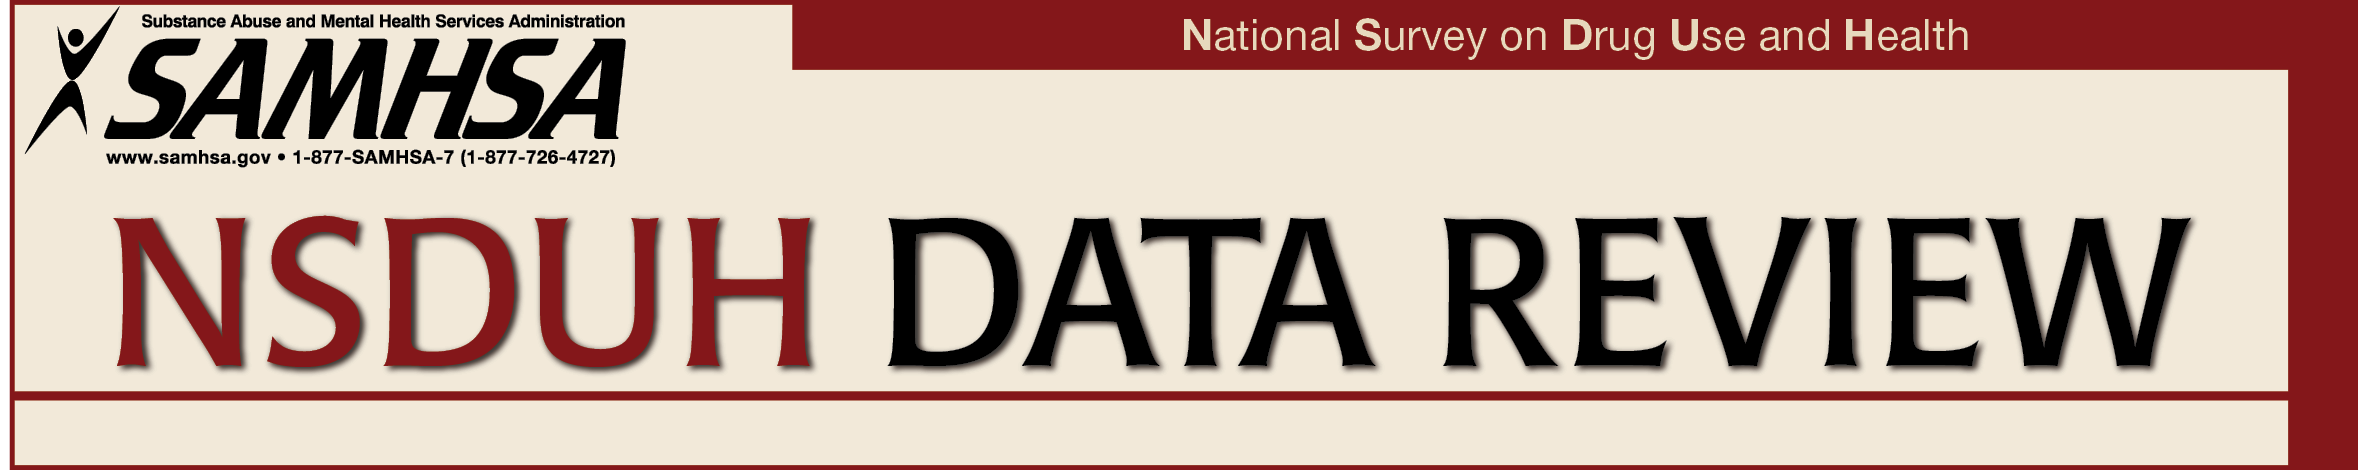 Banner image for NSDUH Data Review, Center for Behavioral Health Statistics and Quality